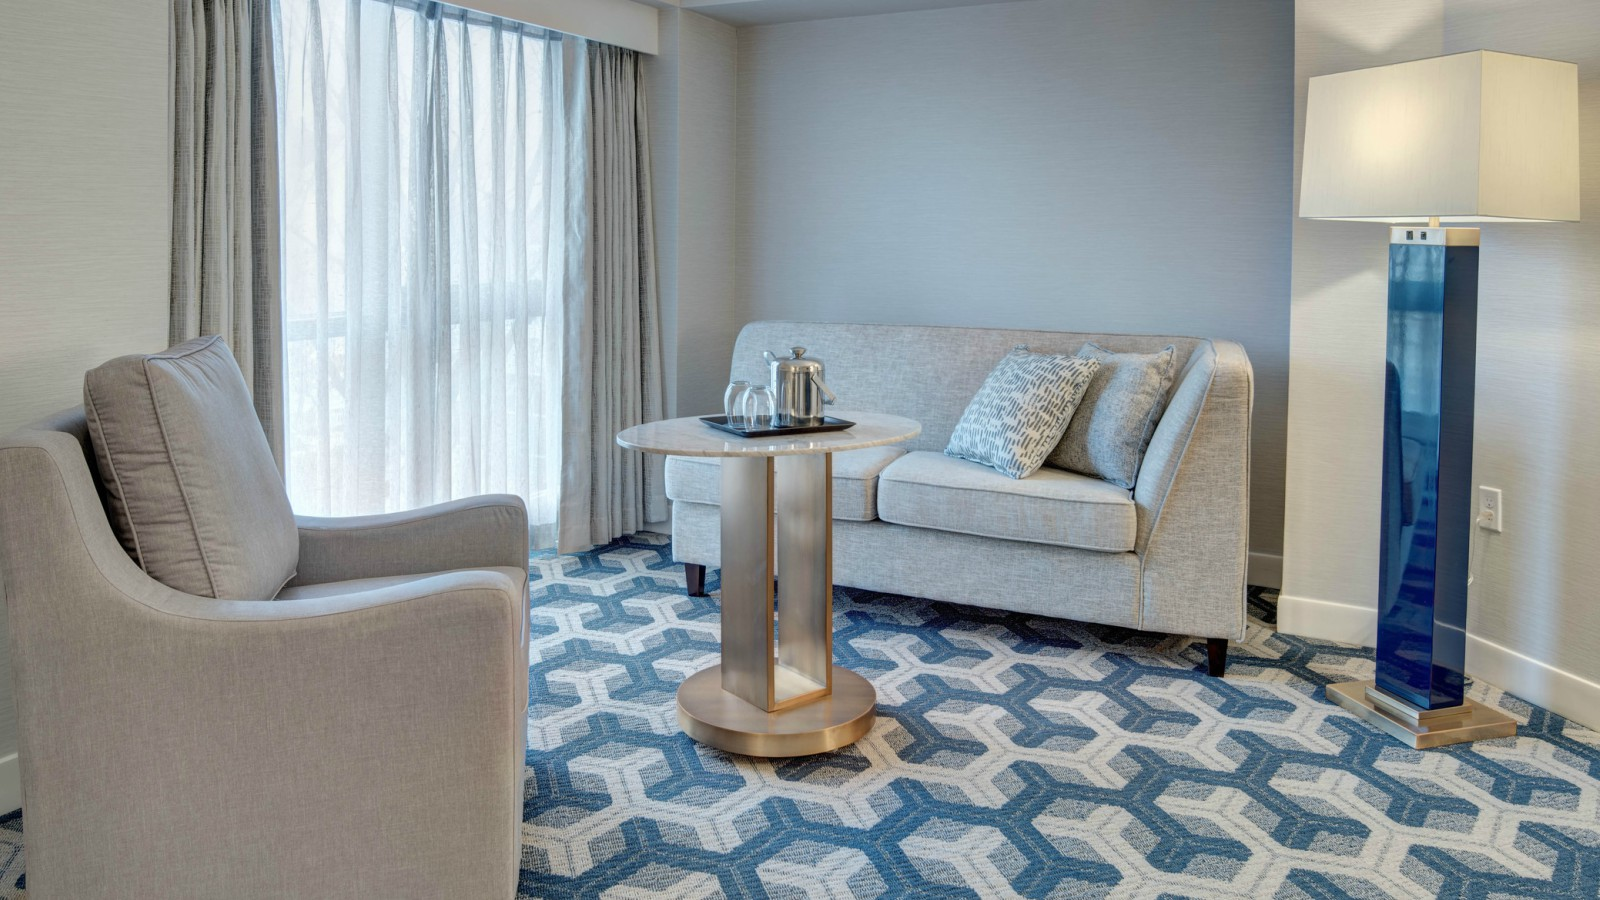 Deluxe Guest Room - Sheraton Eatontown Hotel